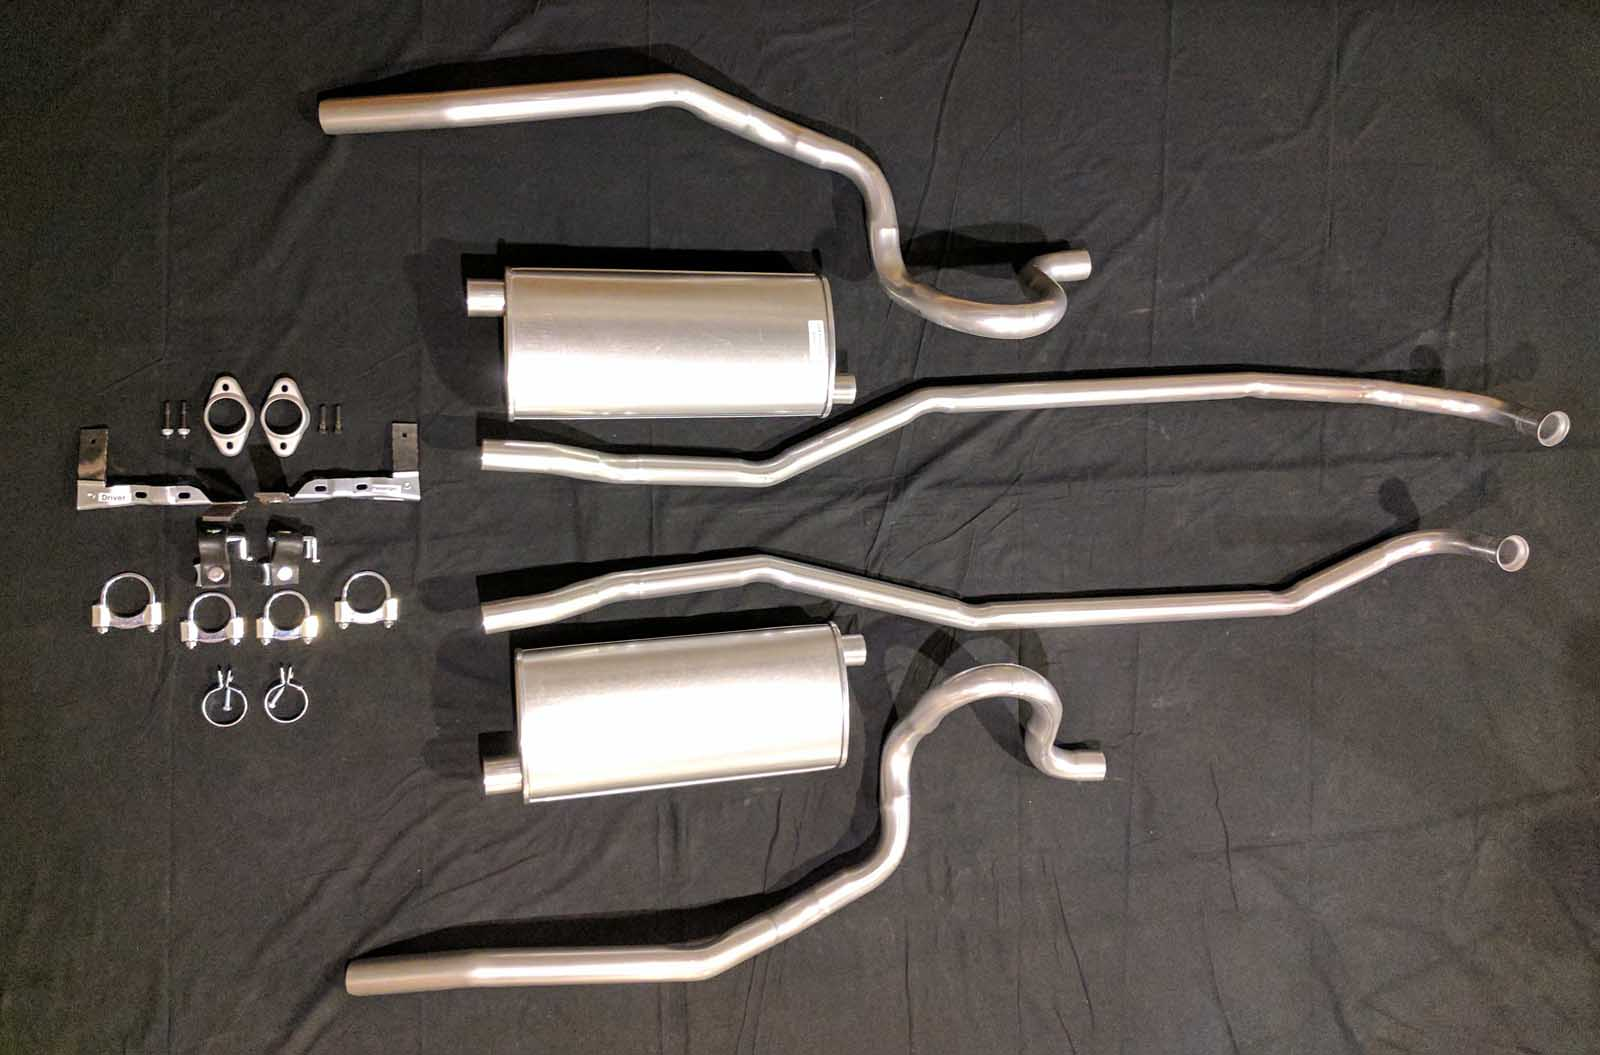 1970 Grand Prix Exhaust System